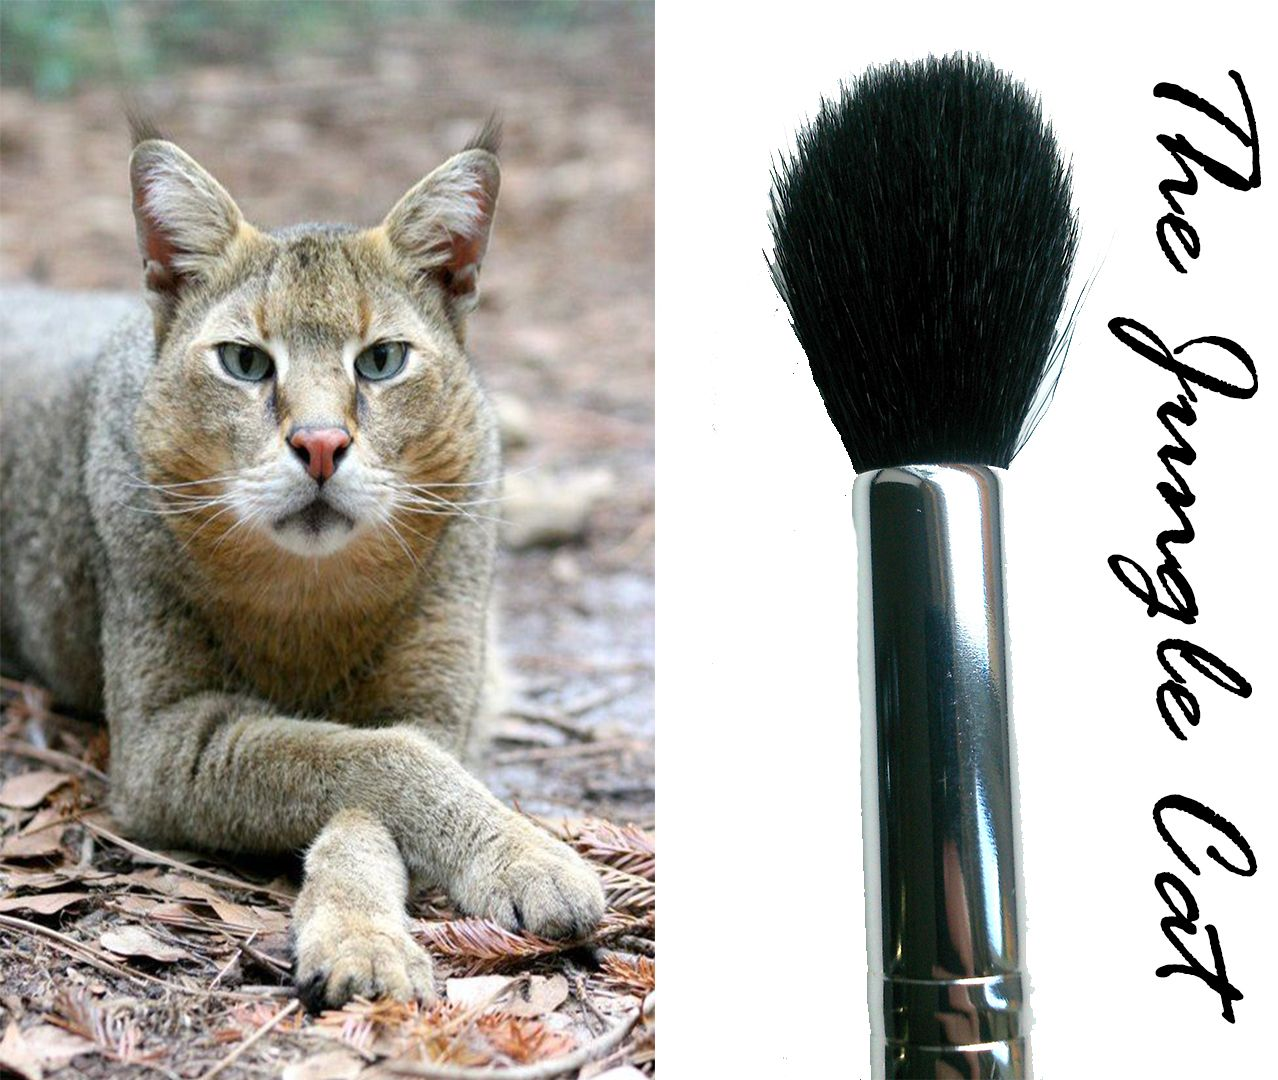 The Jungle Cat - Tapered Highlighter Brush For a long, slim face like the Jungle cat has use our perfect tapered highlighter brush. This brush will help create definition and angles on your skin for model worthy looking bone structure!